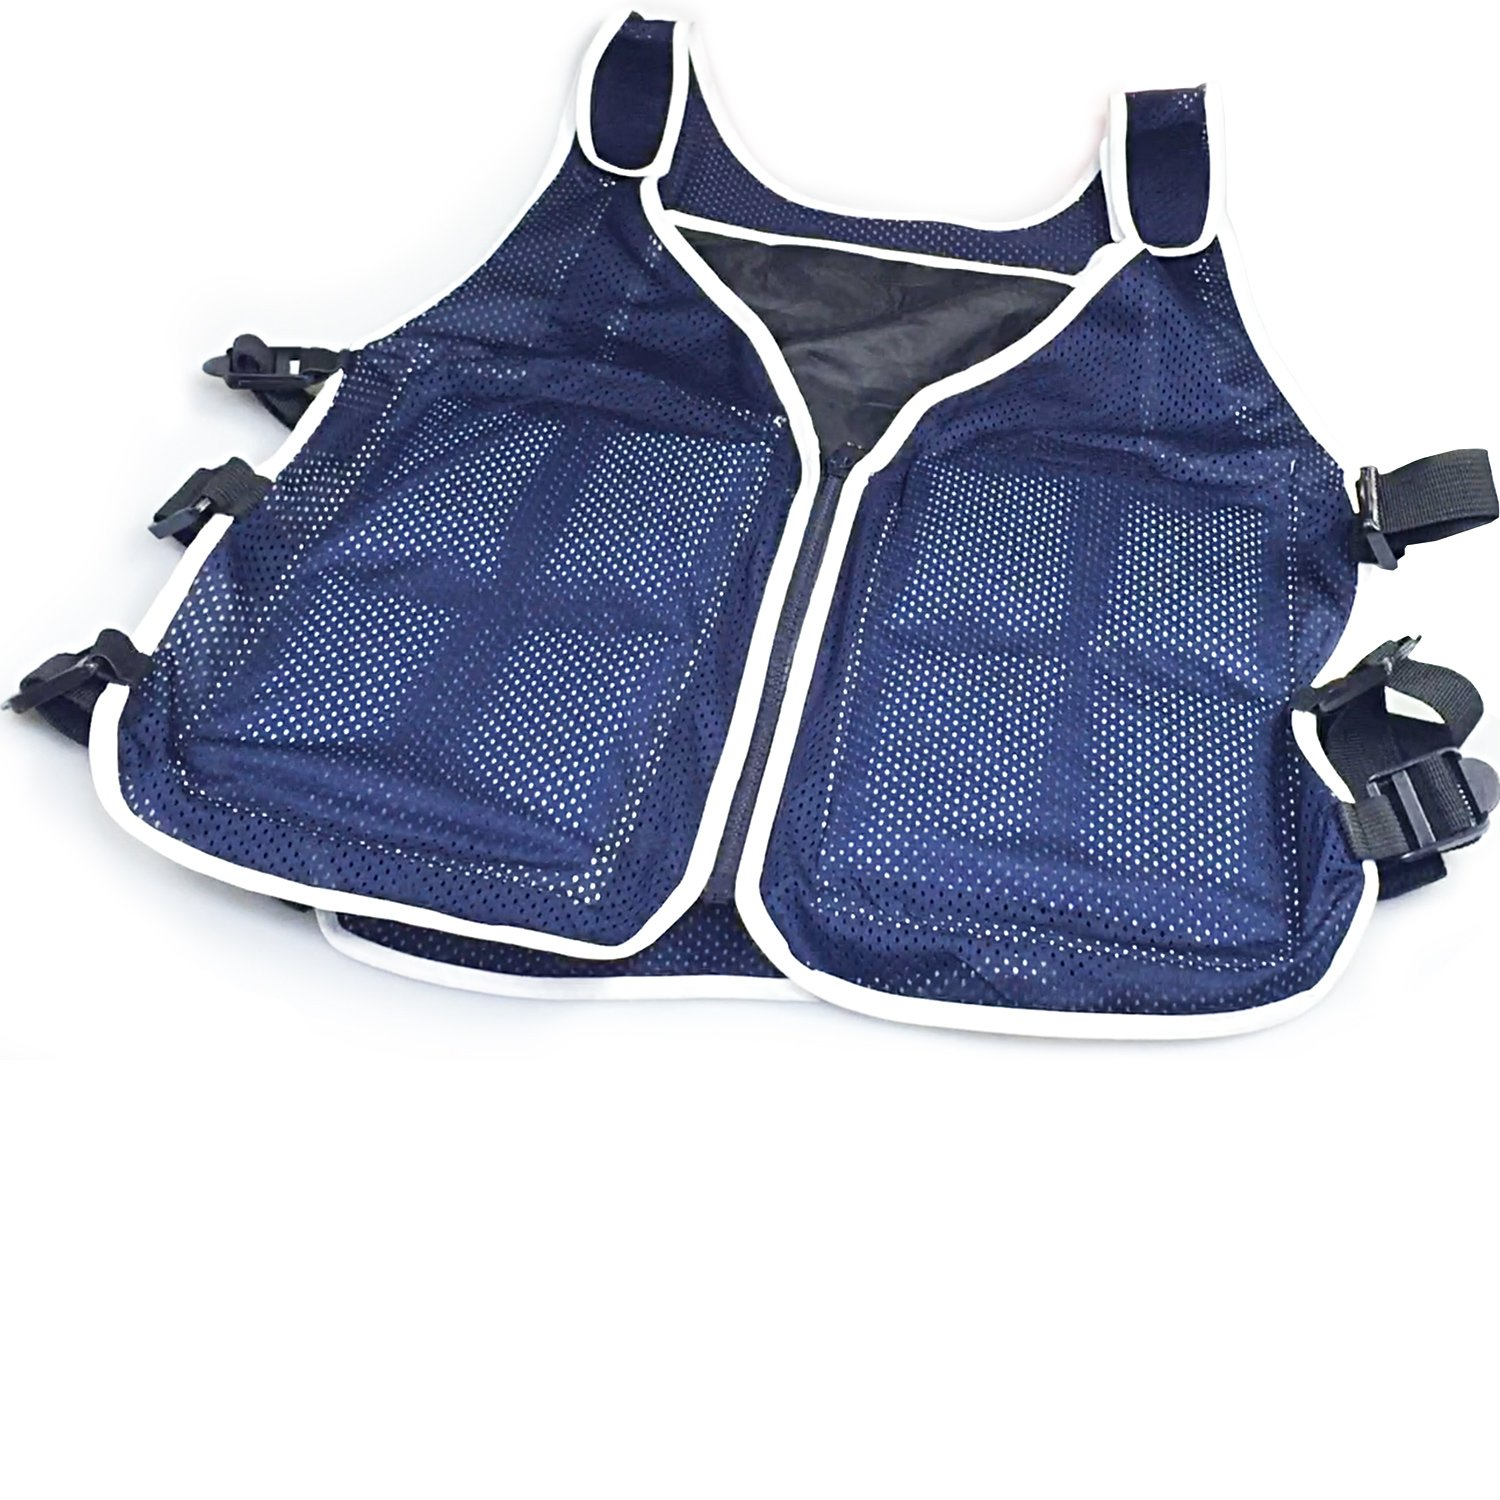 New Home Innovations NHI Cooling Vest - 8 x Body Ice Packs for Double Cooling Time - #1 Ice Cooling Vest for MS - Sport - Motorcycle - Cooking - Mascot - Cosplay Adjustable Cooling Shirt by New Home Innovations